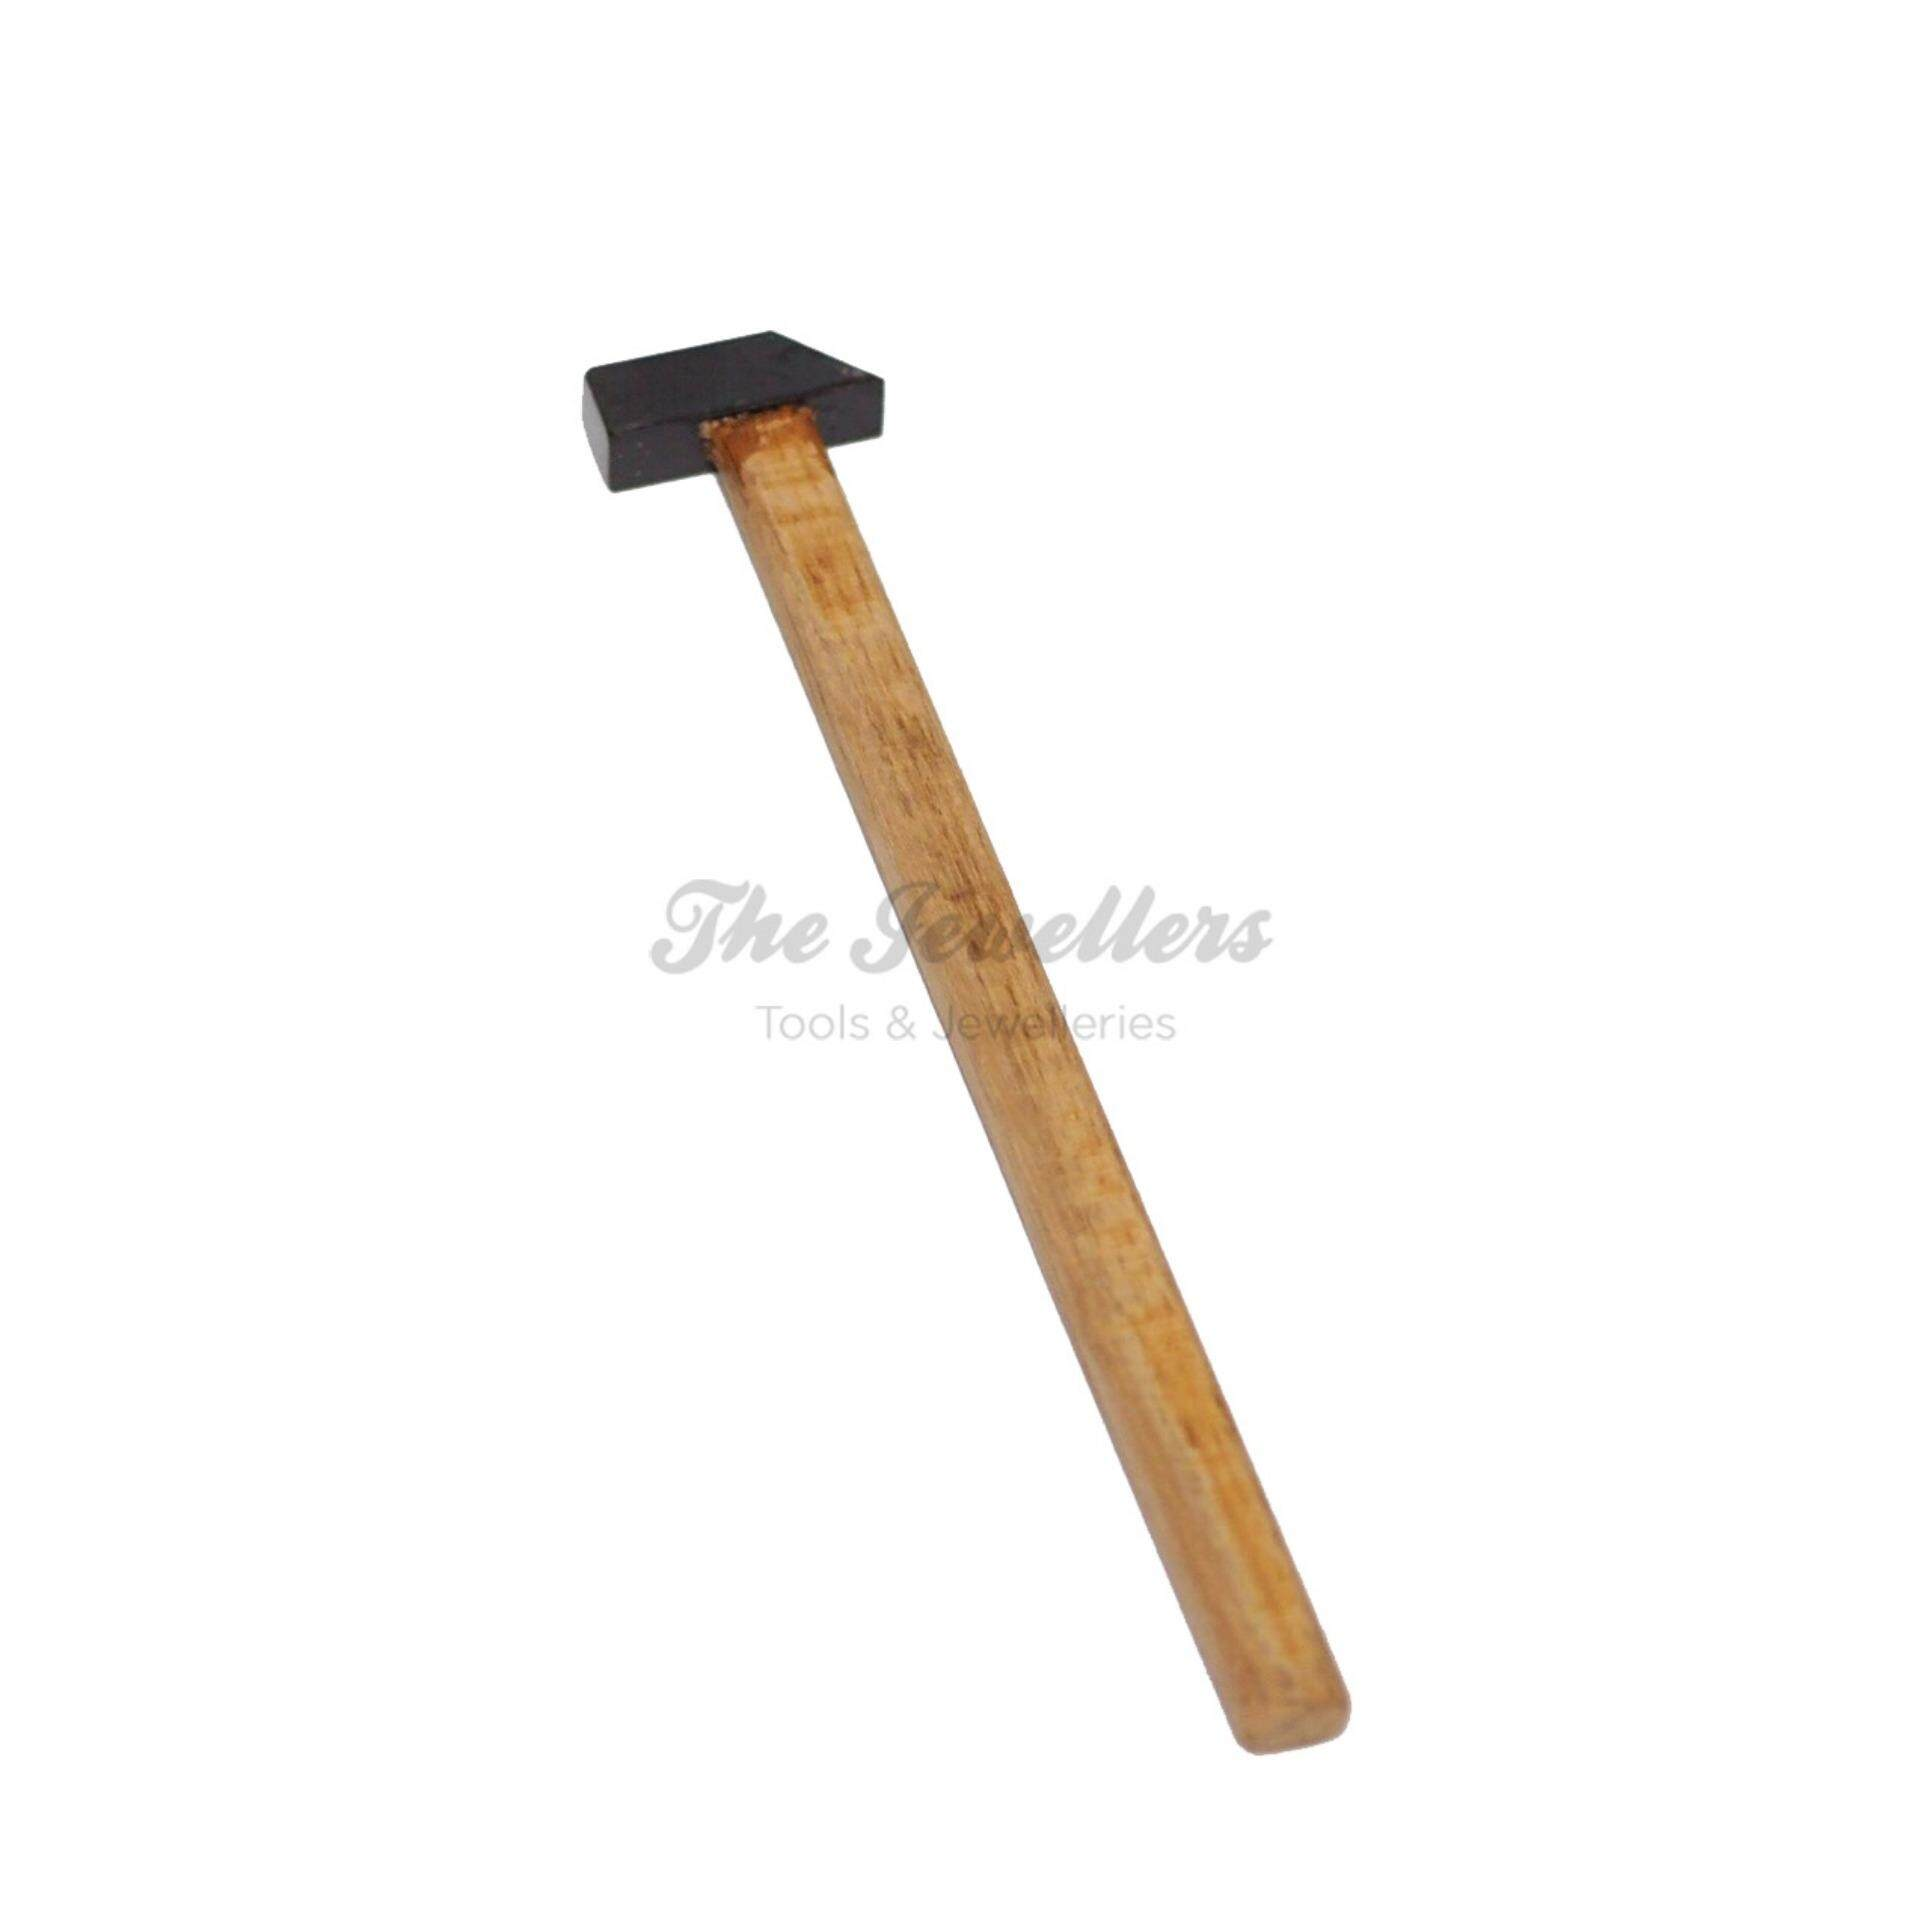 13mm Jewellery Hammer with Steel Head & Wood Handle